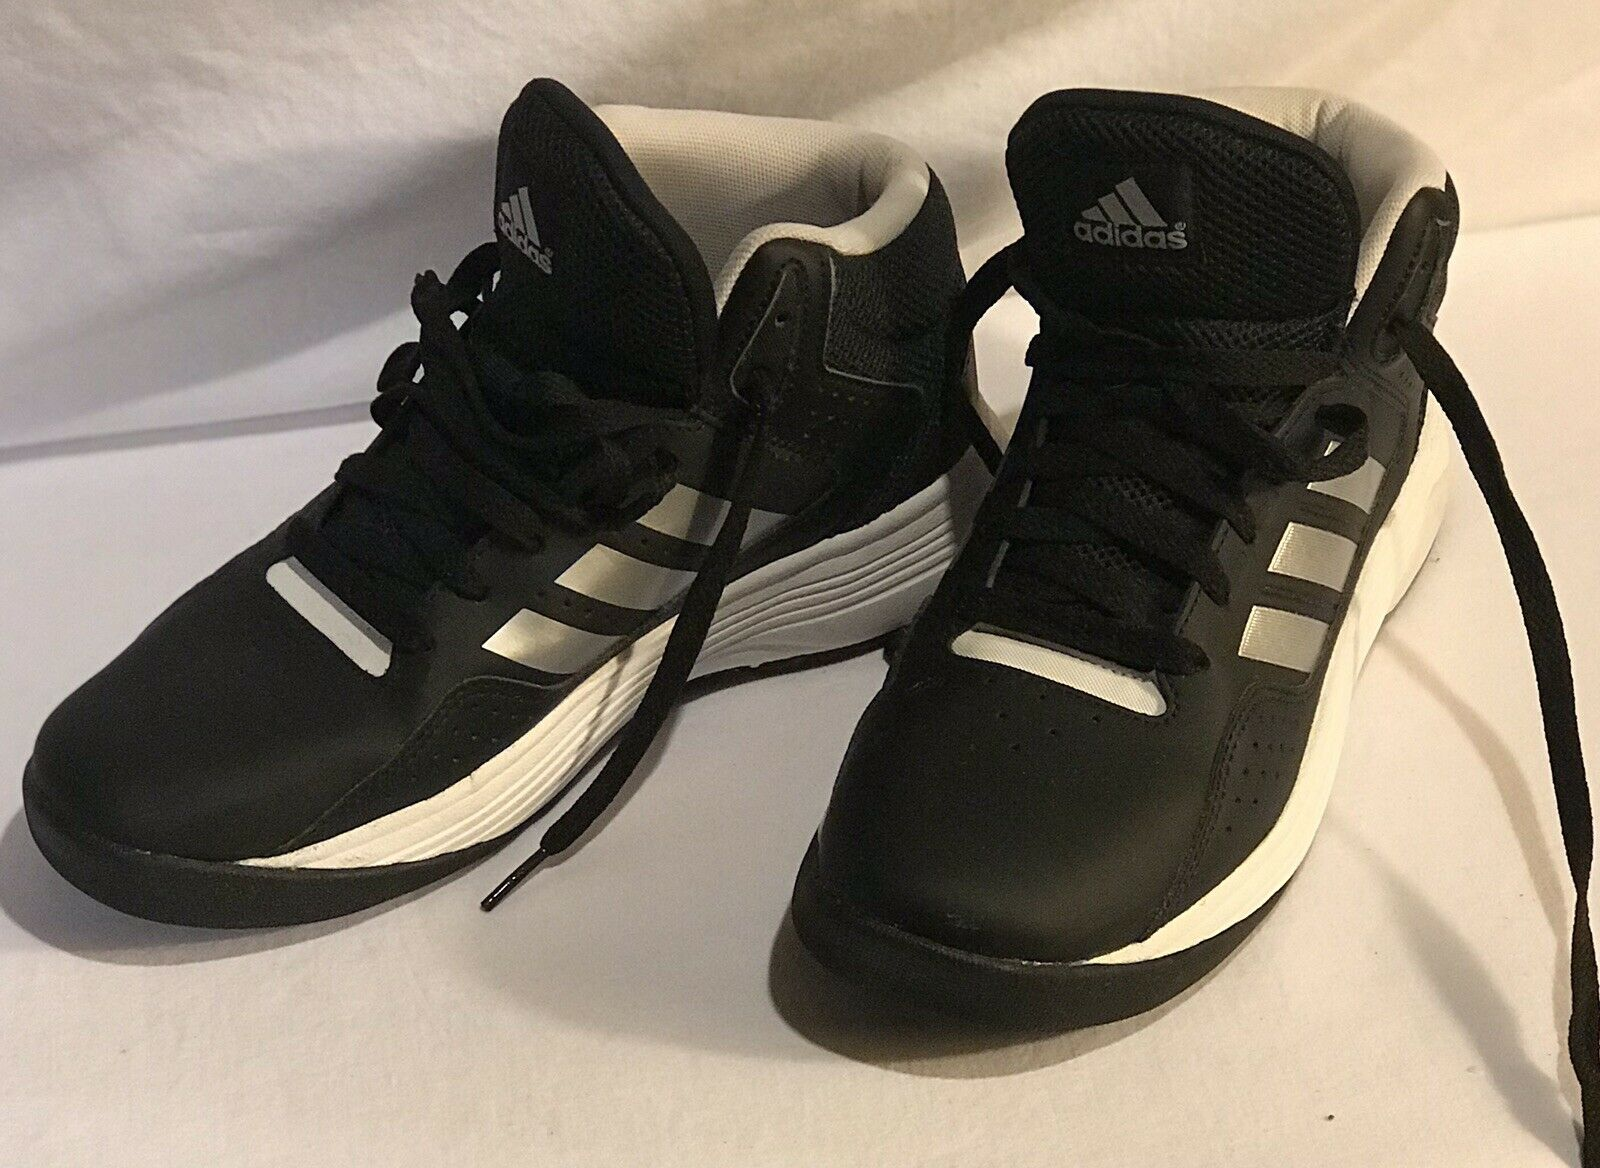 tener Comida Vago  Adidas Cloudfoam Basketball Mid Black/Silver AQ1331 Size 5.5 (5 1/2) Barely  Used for sale online